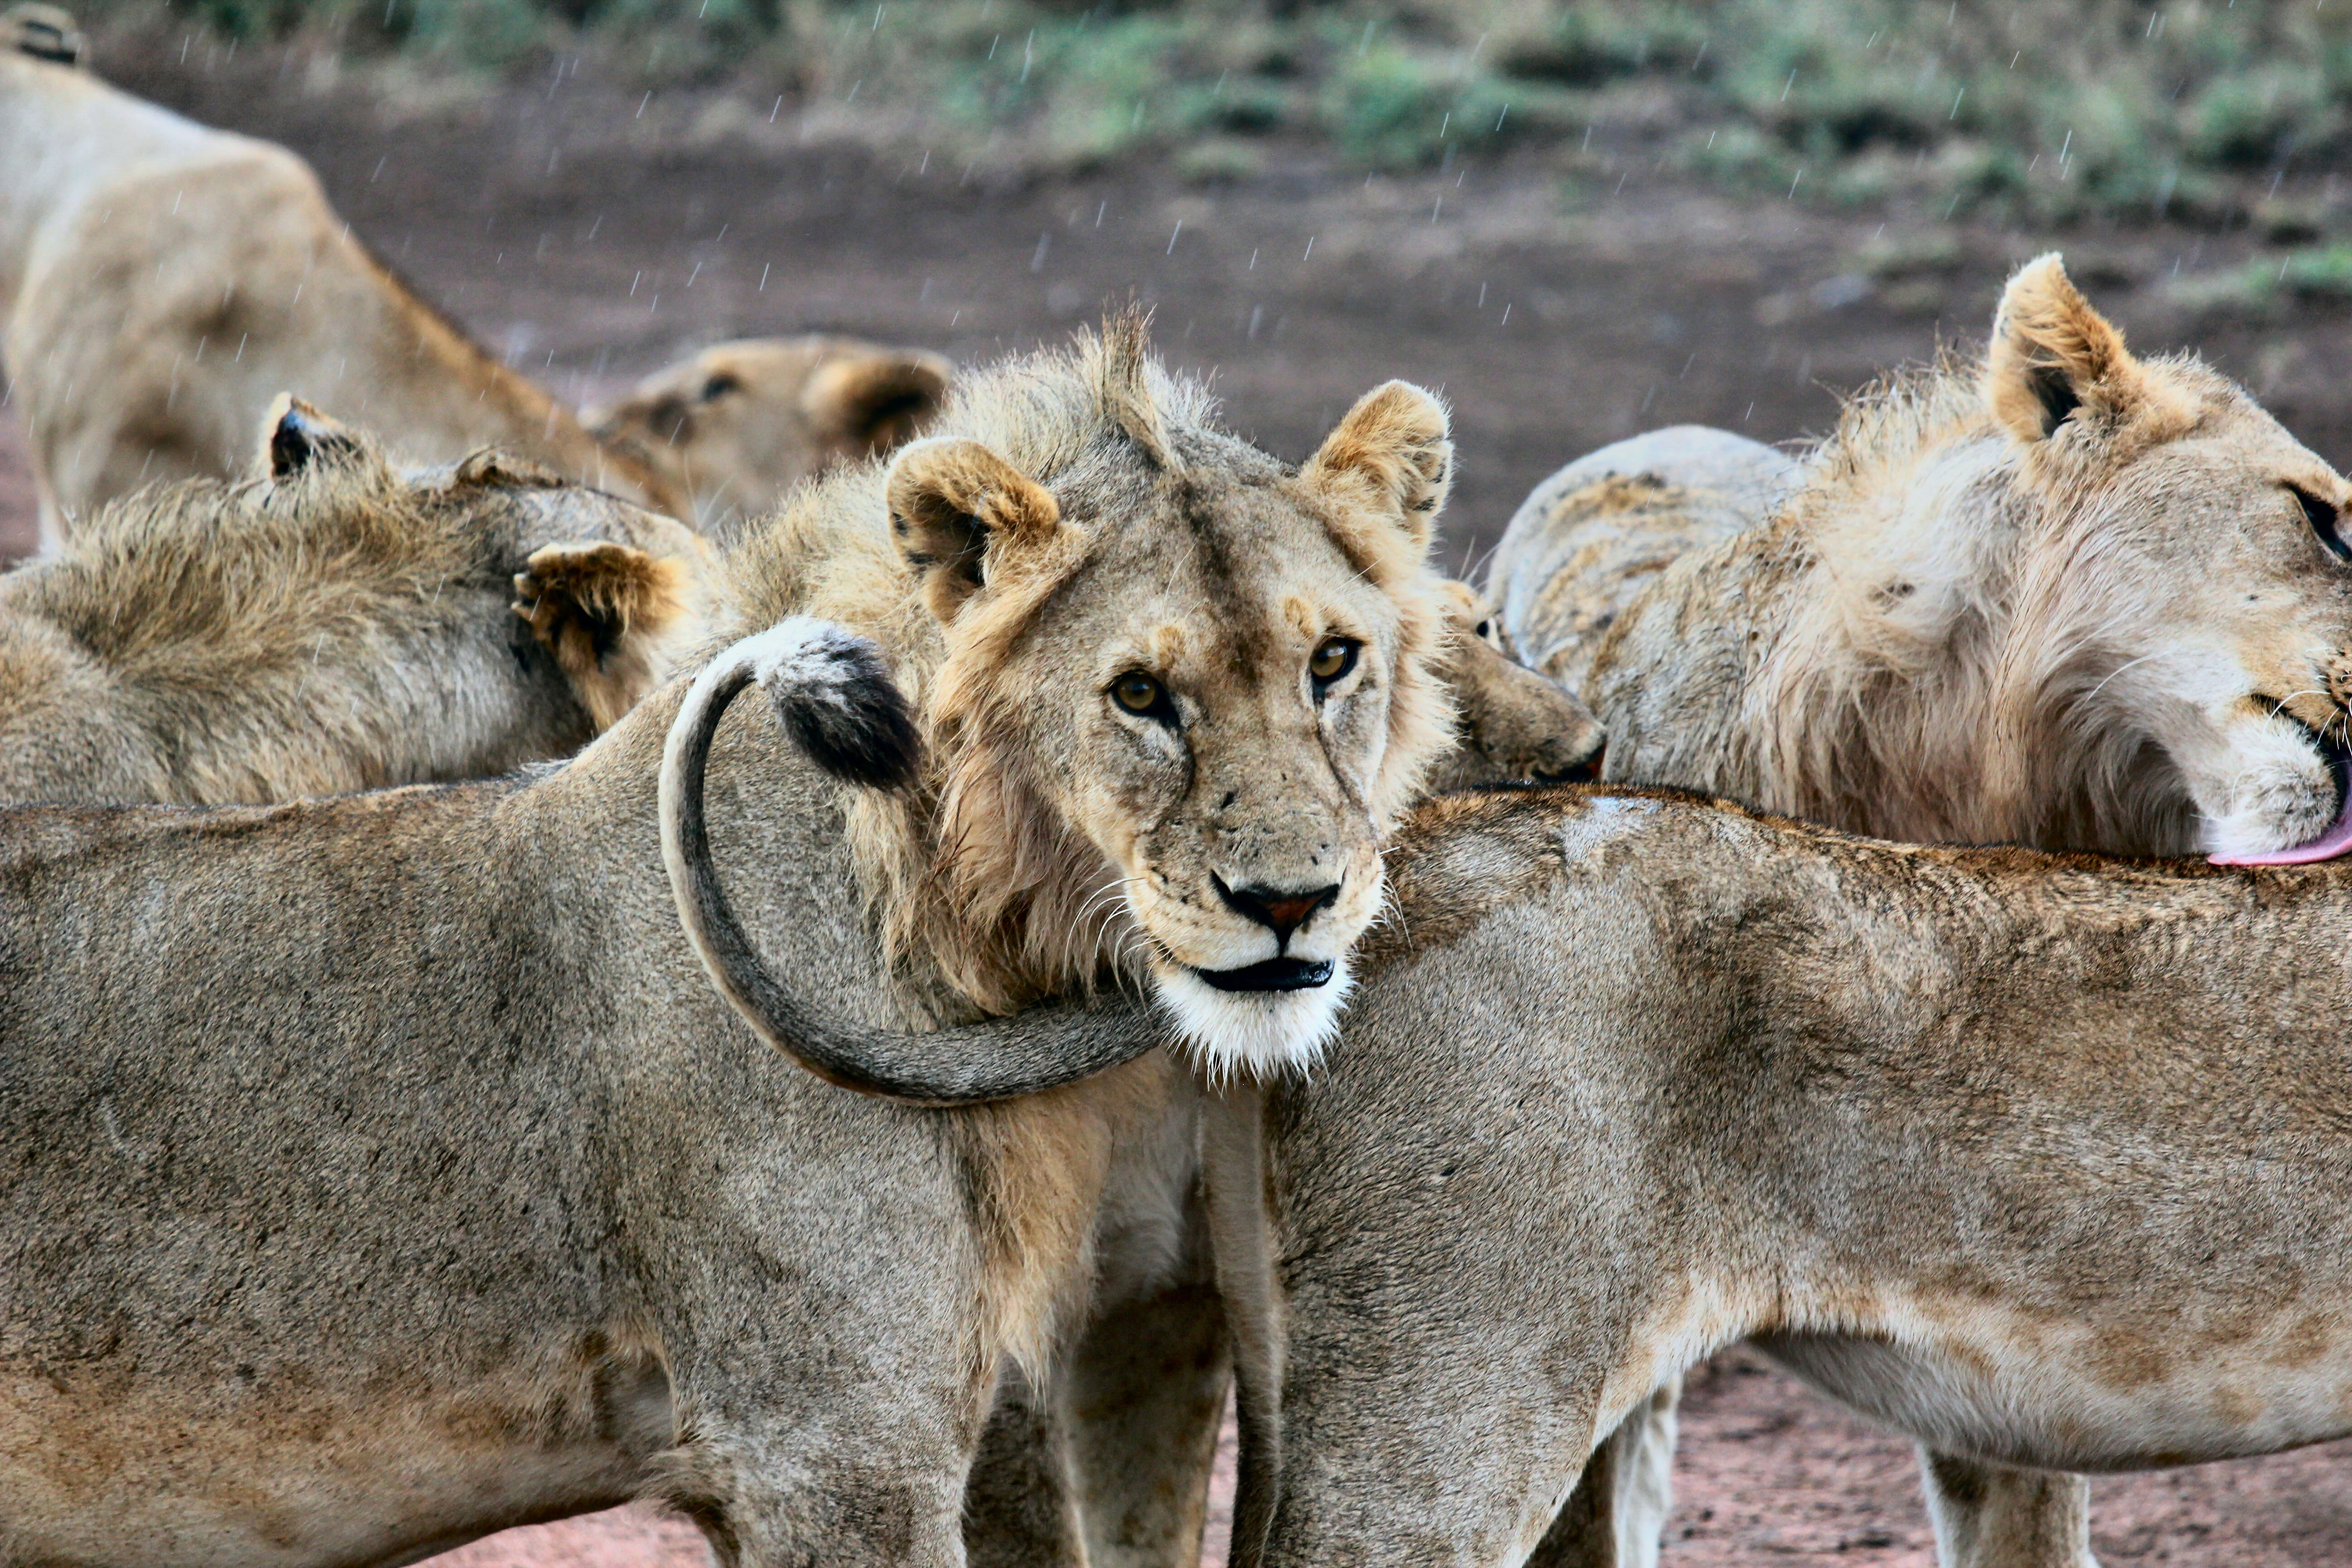 68772 download wallpaper Animals, Lion, Predators, Muzzle, Lions screensavers and pictures for free